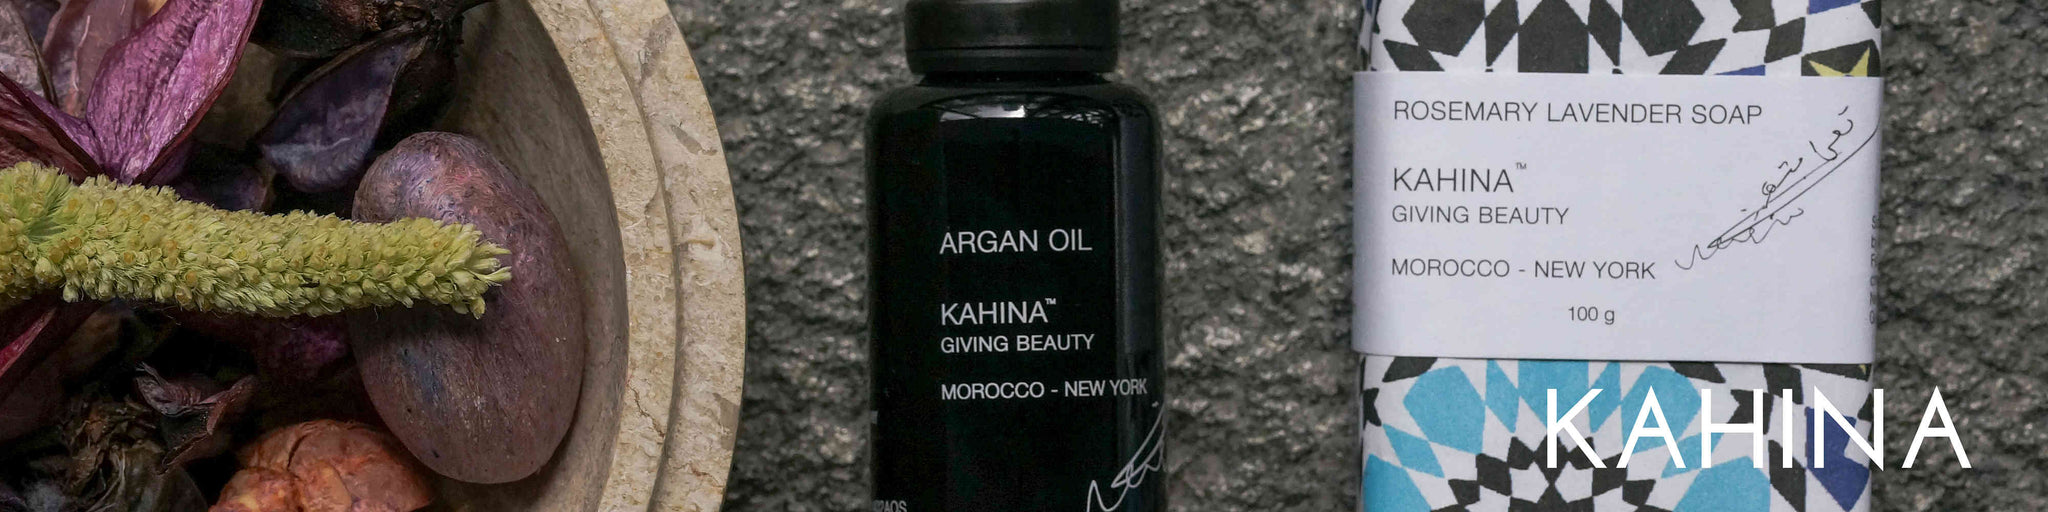 Kahina Giving Beauty: Organic and Natural Skin Care at Gourmet Skin Bar